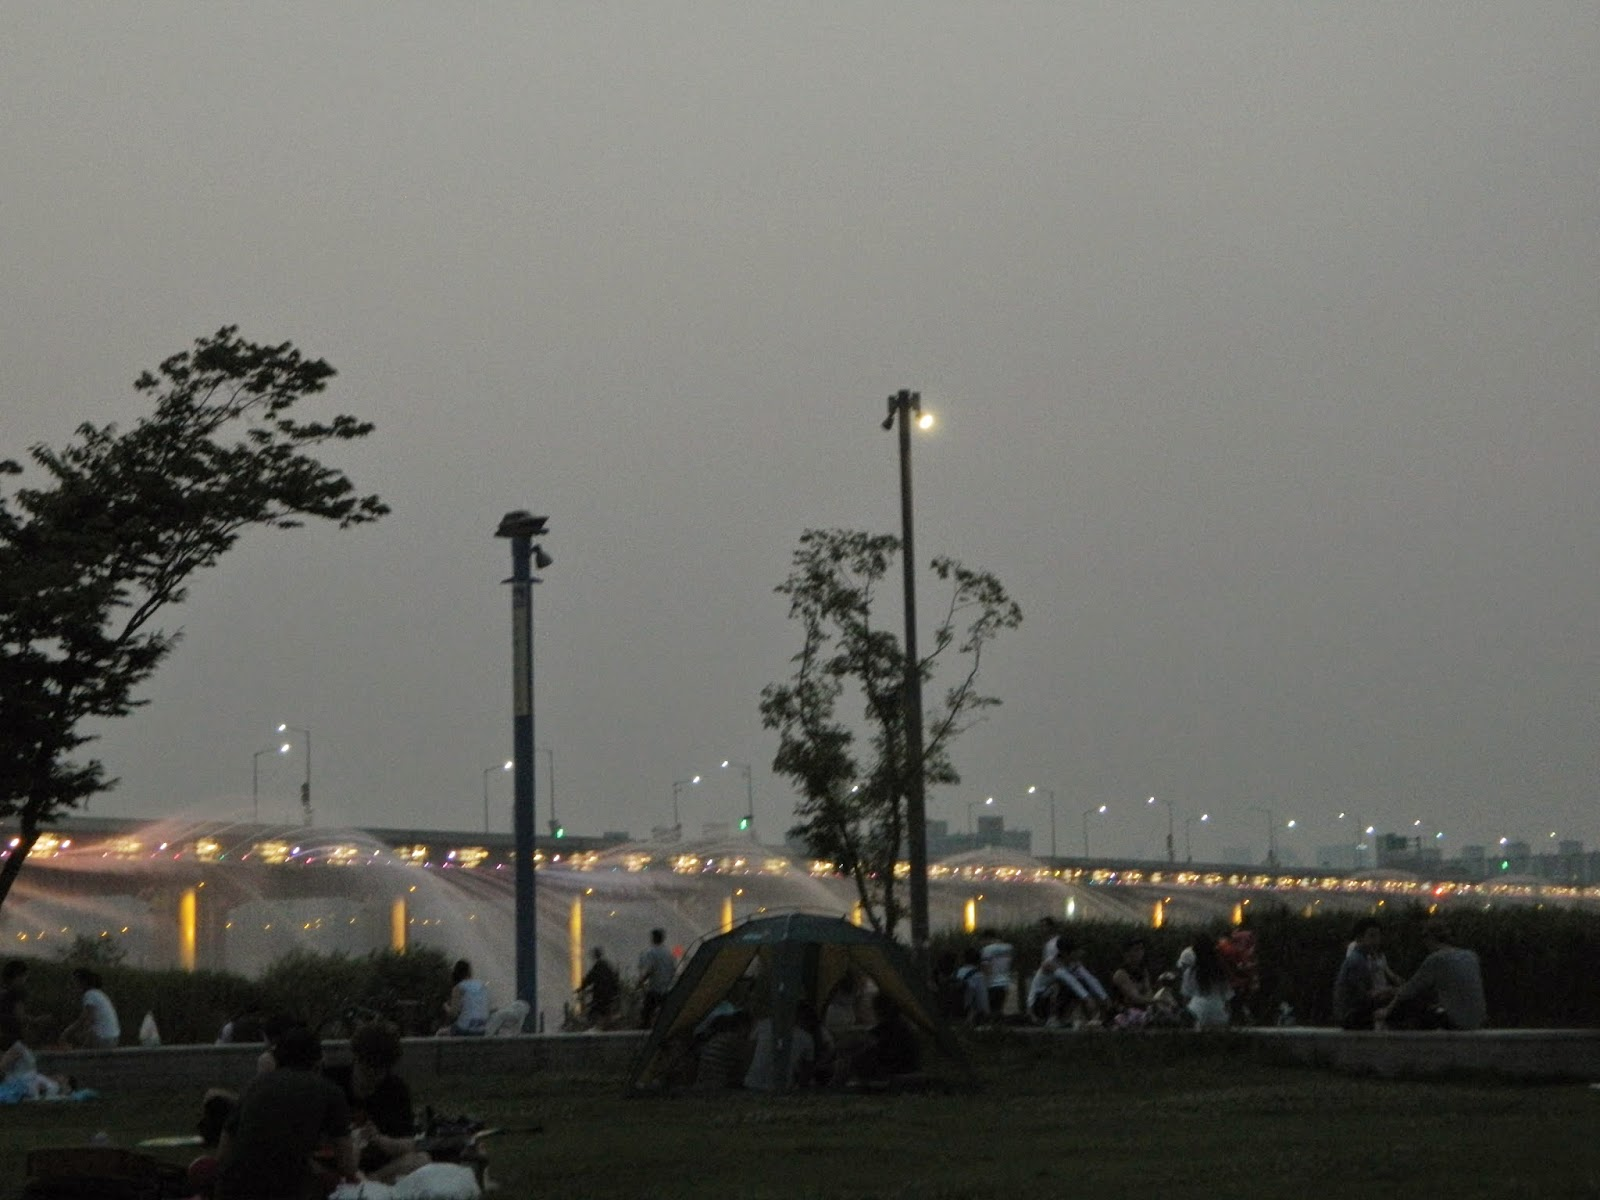 Evening at Banpo